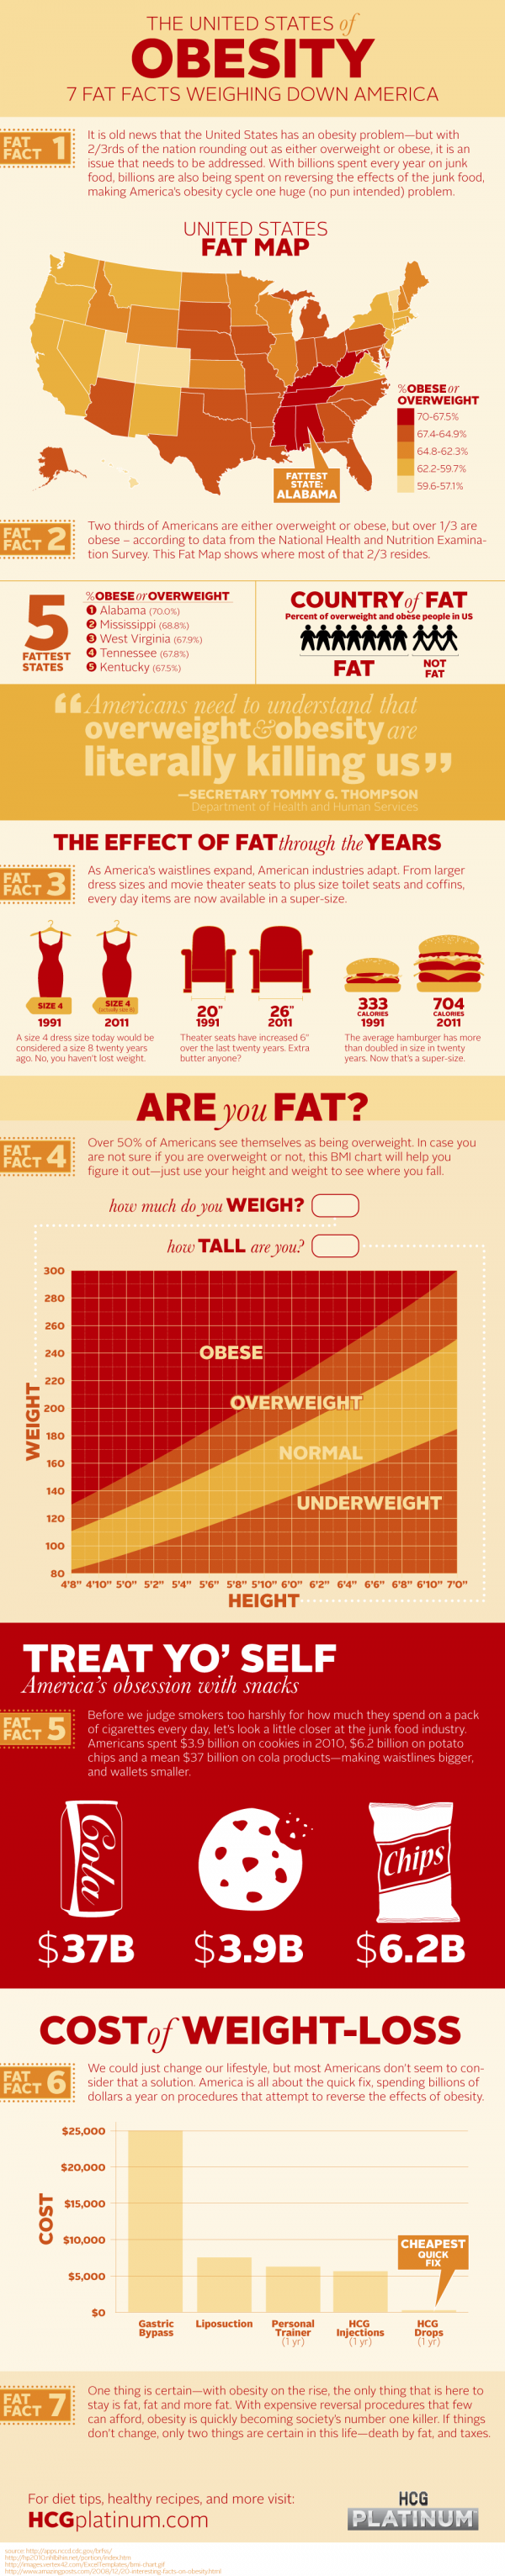 The United States of Obesity [Infographic]